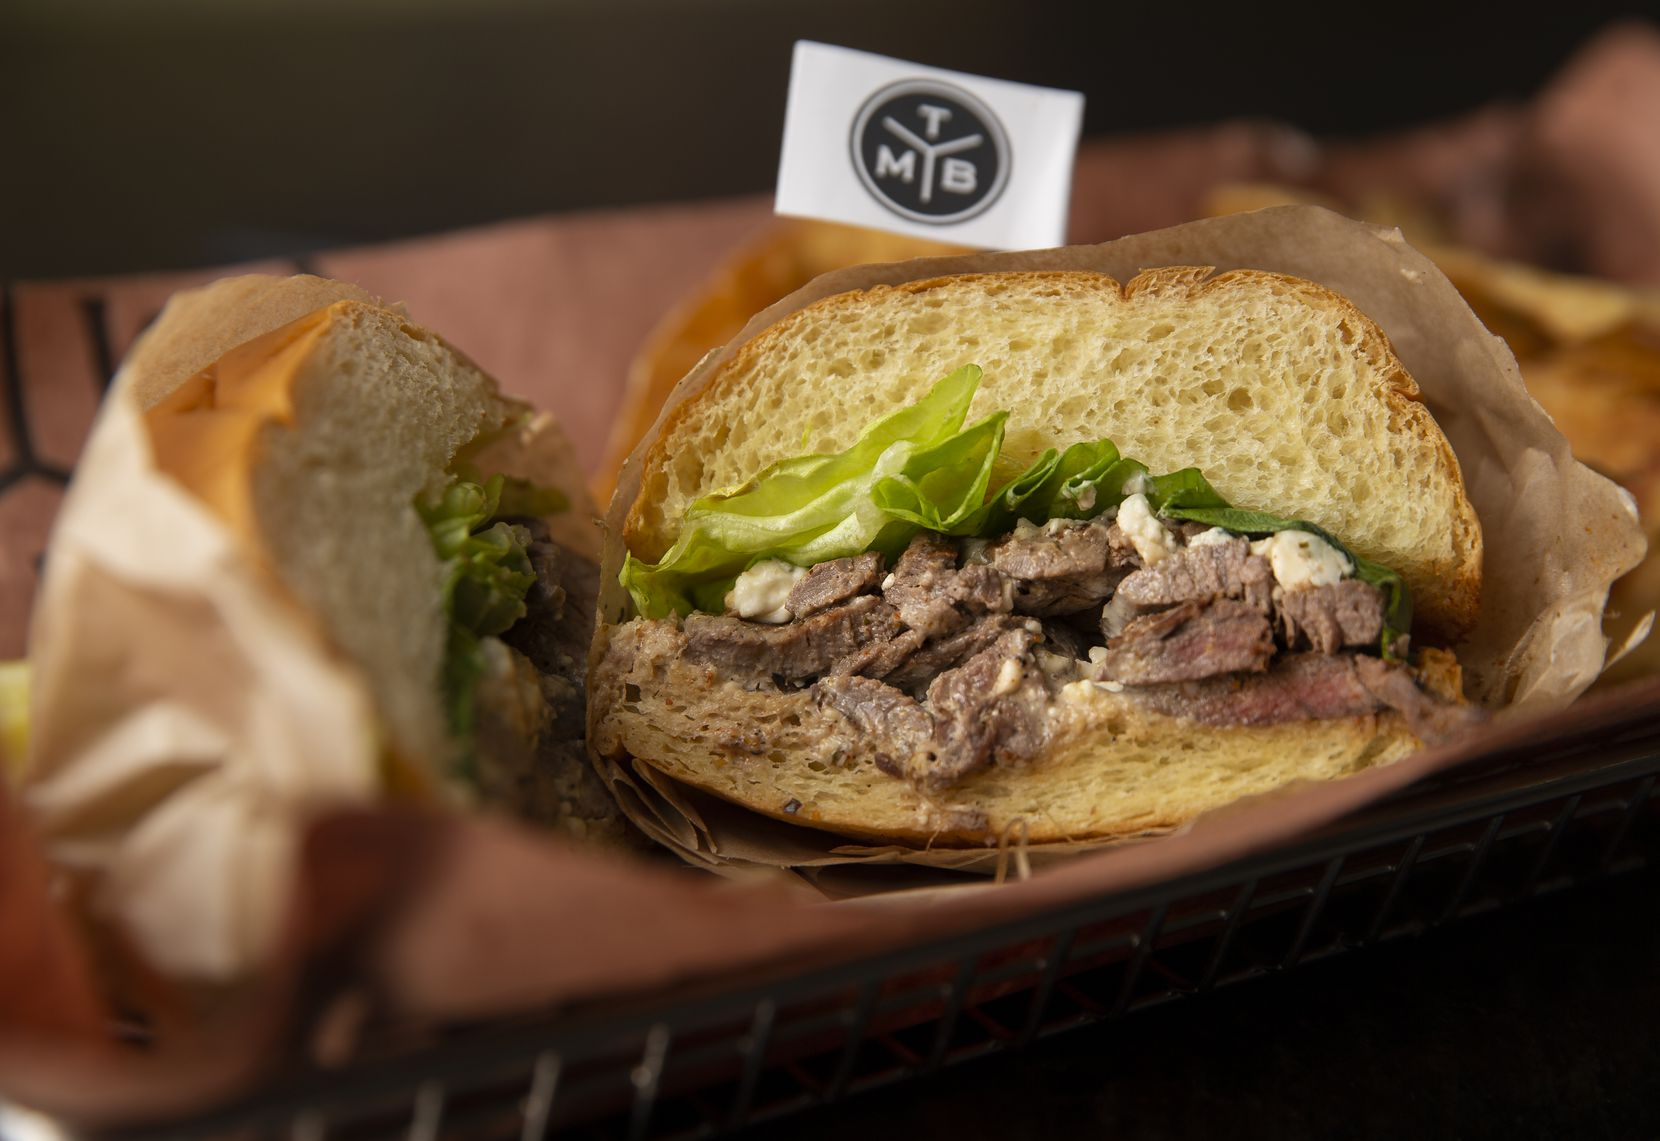 You can get the signature grilled steak sandwich at the Meat Board in Fort Worth.